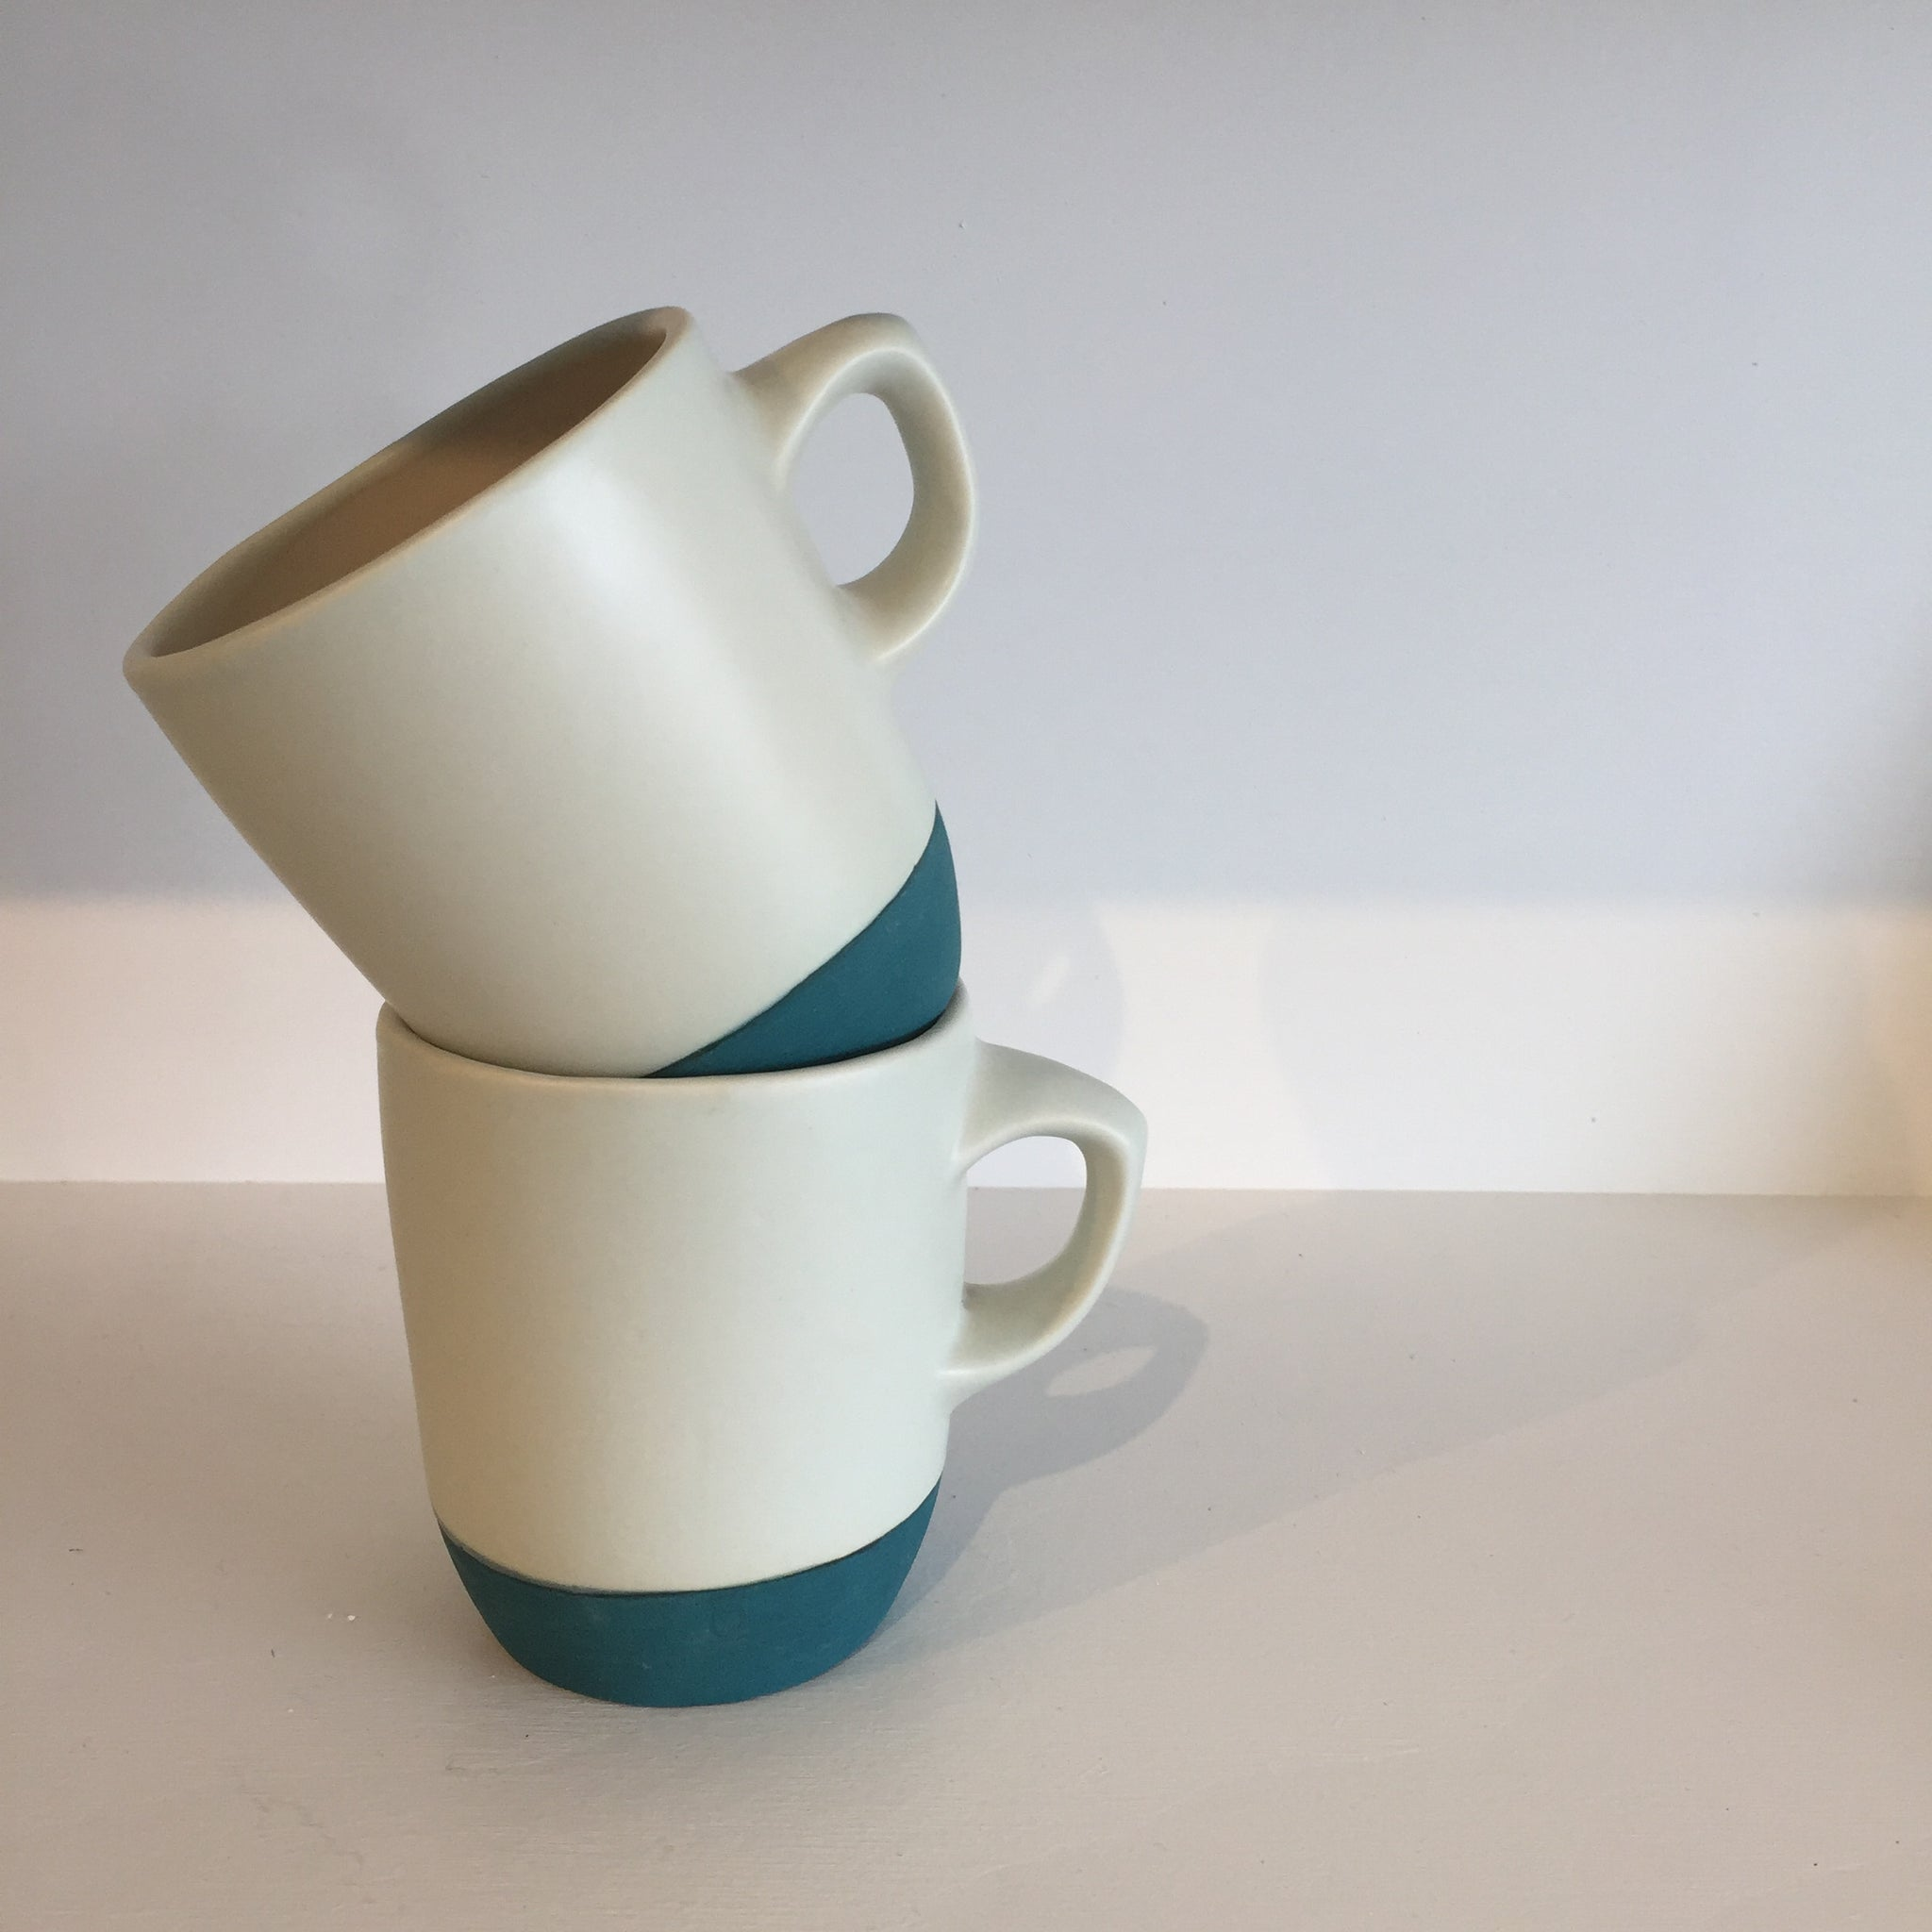 The classic cup with dark teal